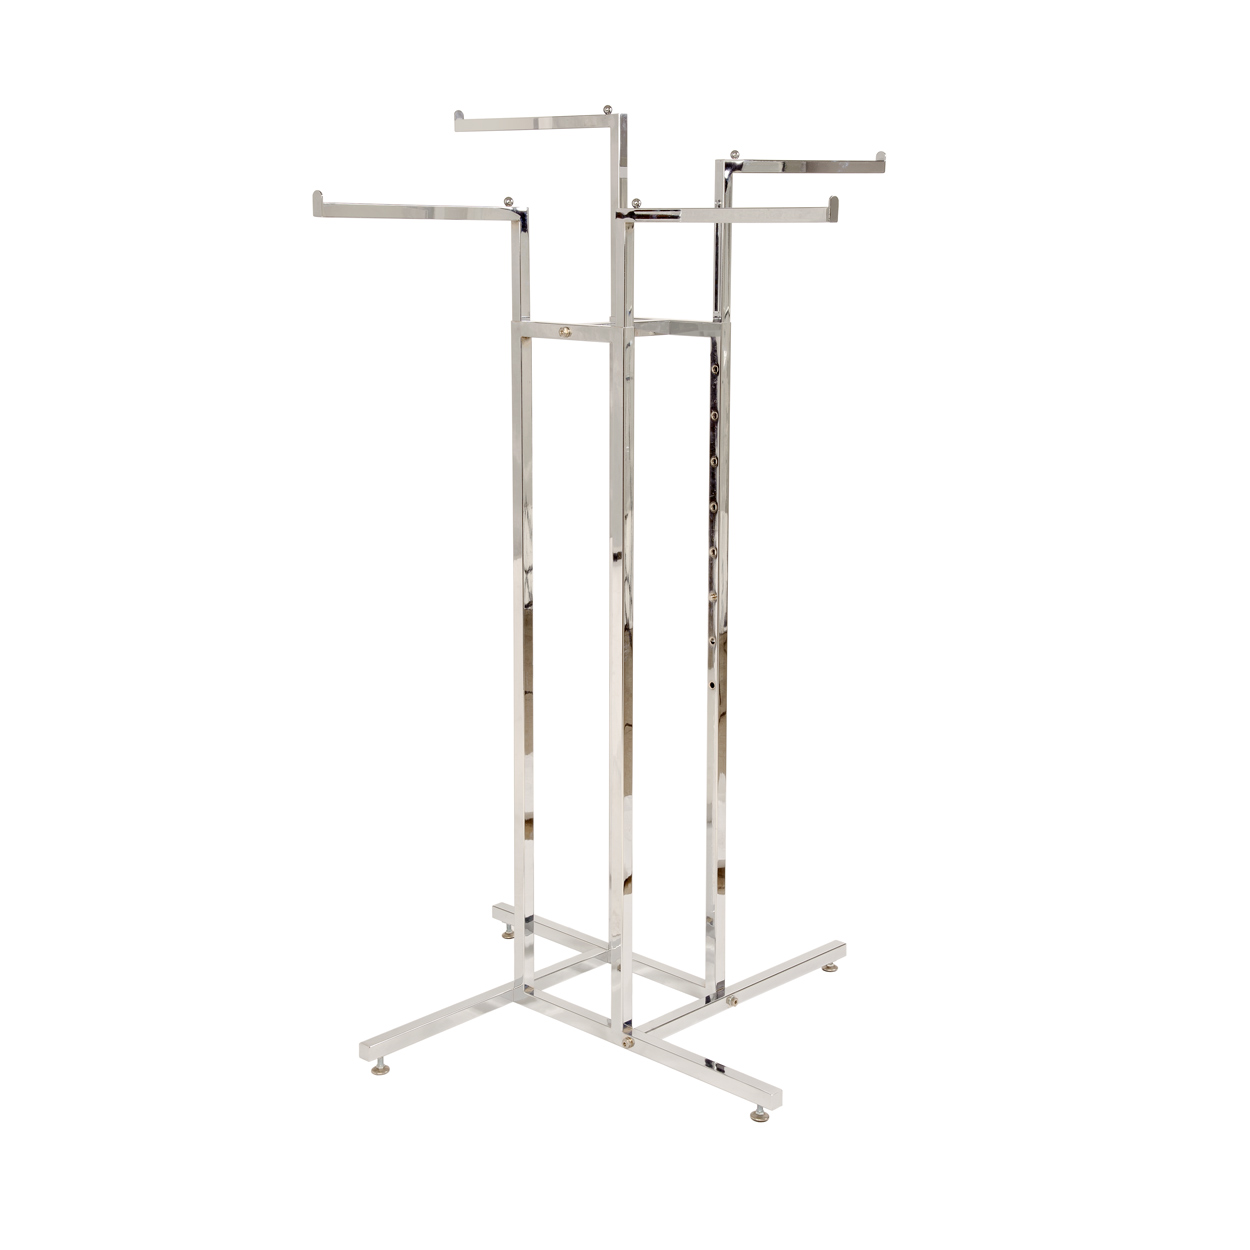 4 Way Clothes Rack Kit. Height 1190mm x Width 890mm x Depth 890mm x Length (Waterfall Arms): 380mm